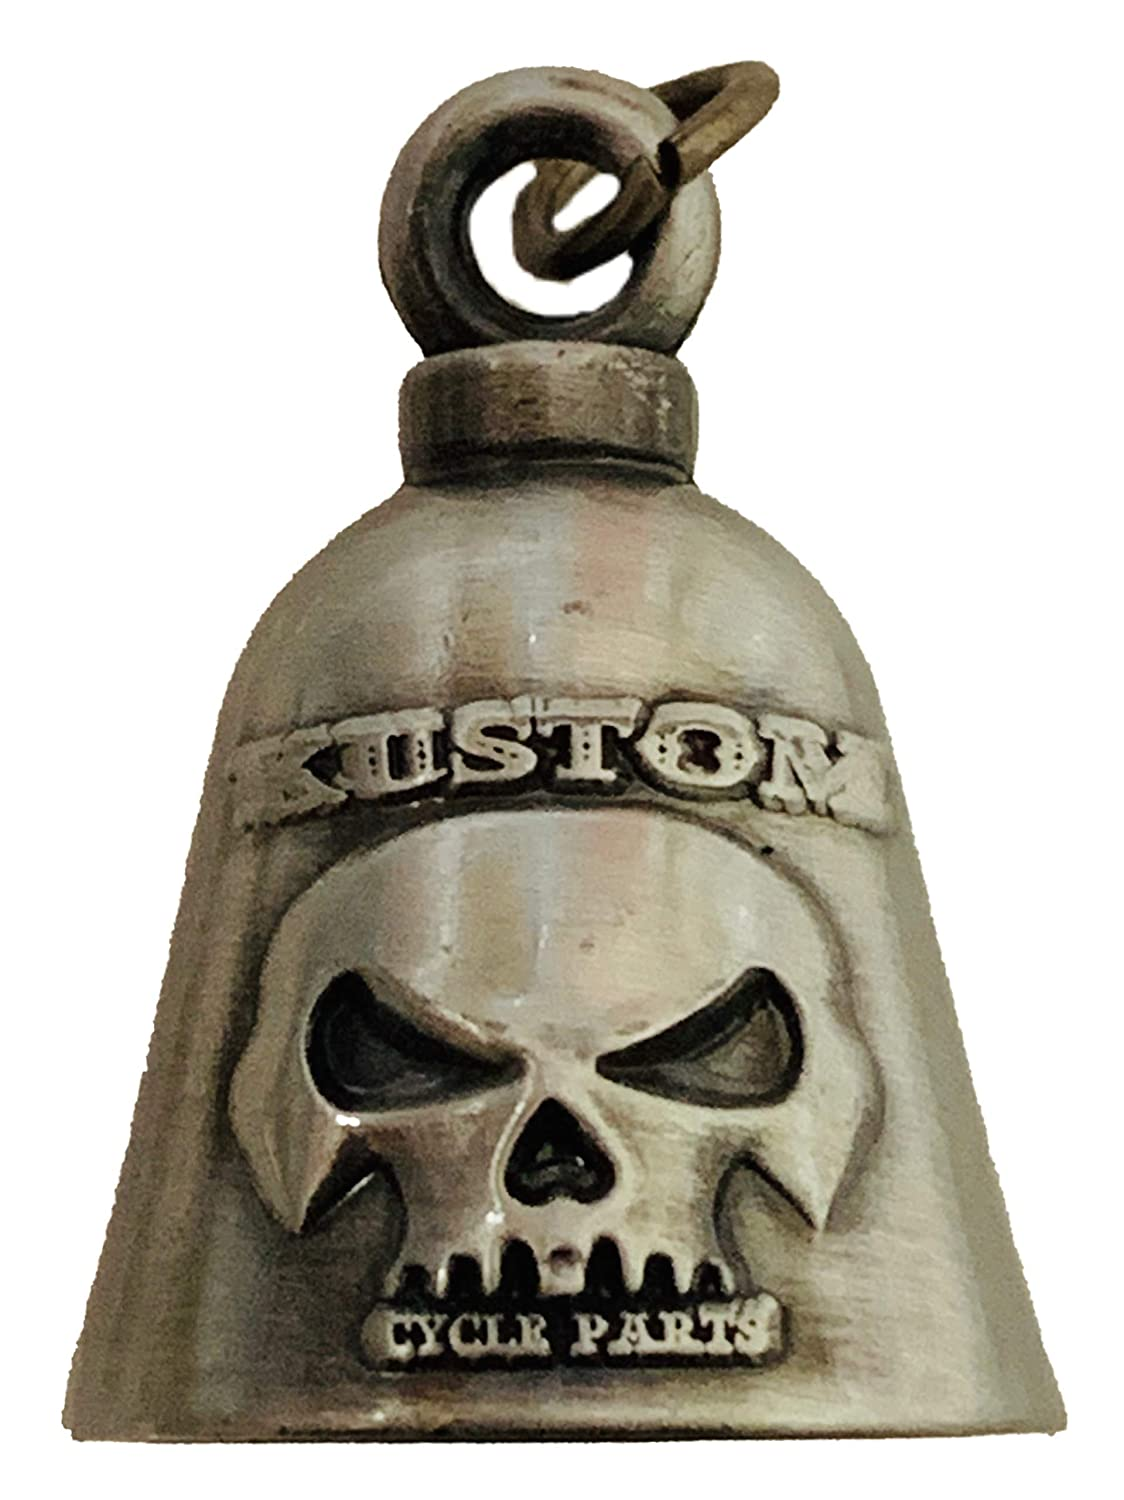 Bolt and Ring Included Proudly MADE IN THE USA! No Bell Kustom Cycle Parts Universal Rustic American Flag Cross Bell Hanger Fits all Harley Davidson Motorcycles /& More